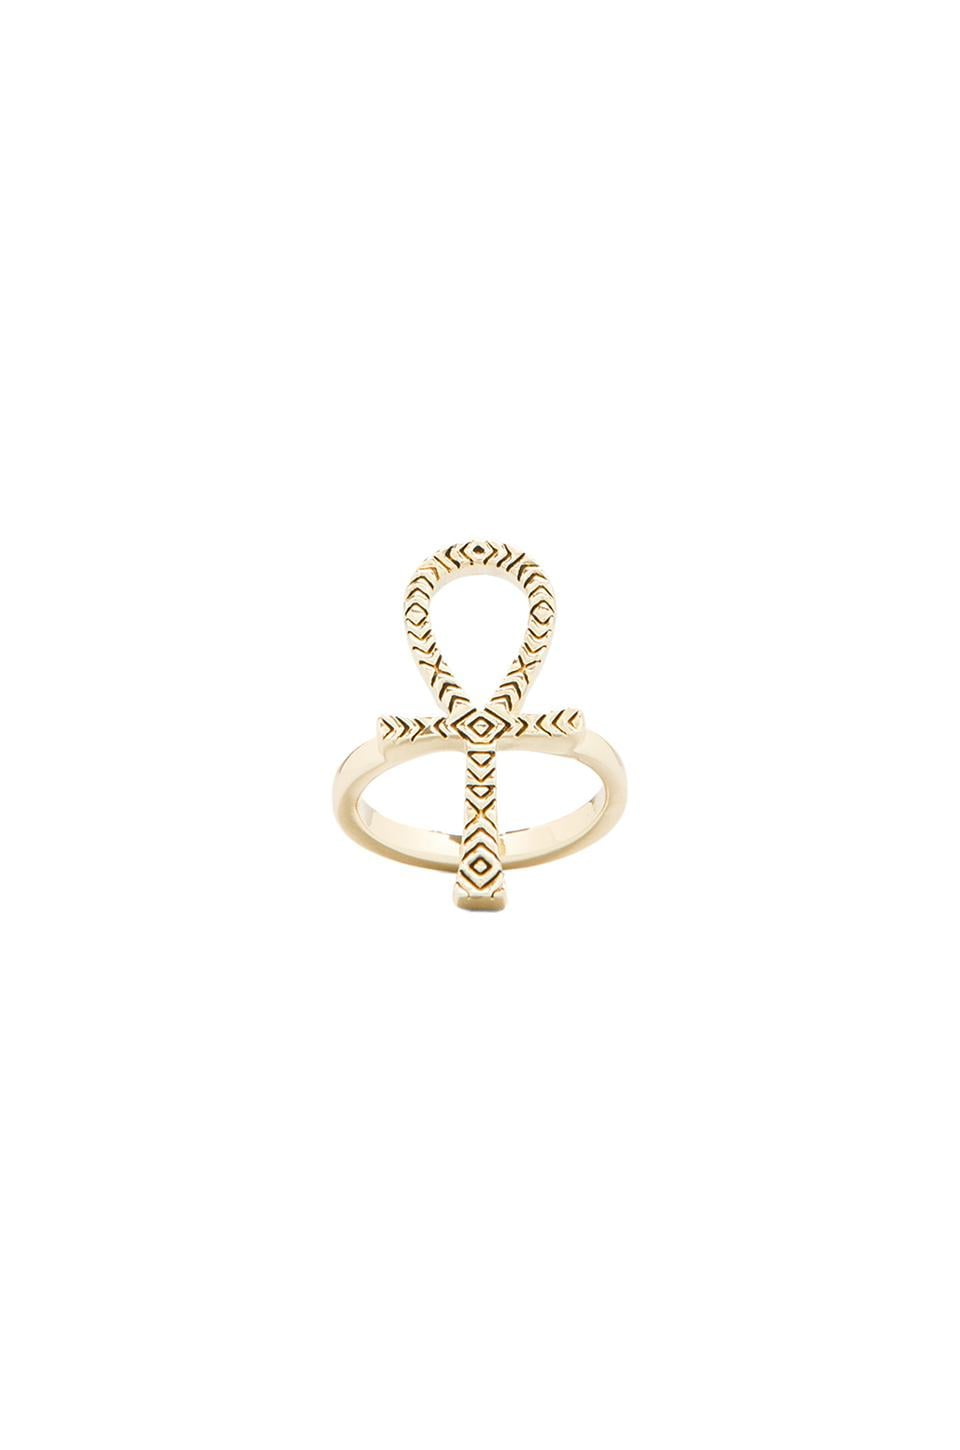 House of Harlow 1960 House of Harlow Knot of Isis Ring in Gold